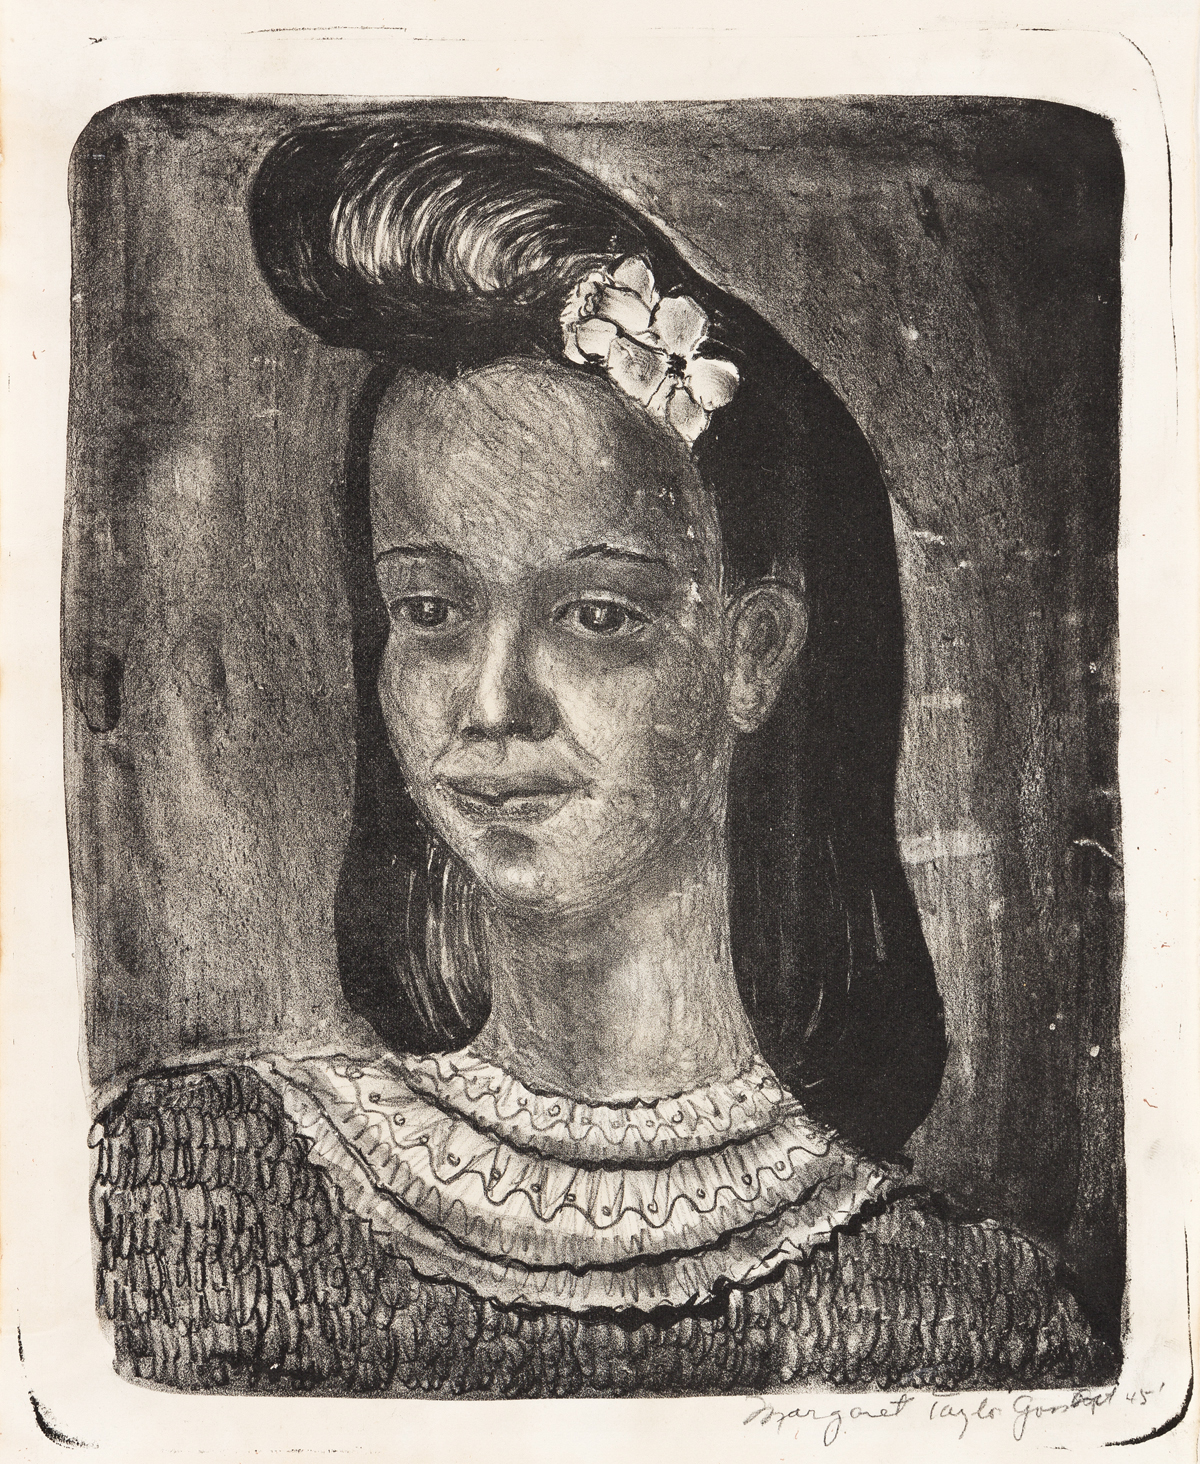 MARGARET BURROUGHS (1917 - 2010) Untitled (Portait of a Young Woman).